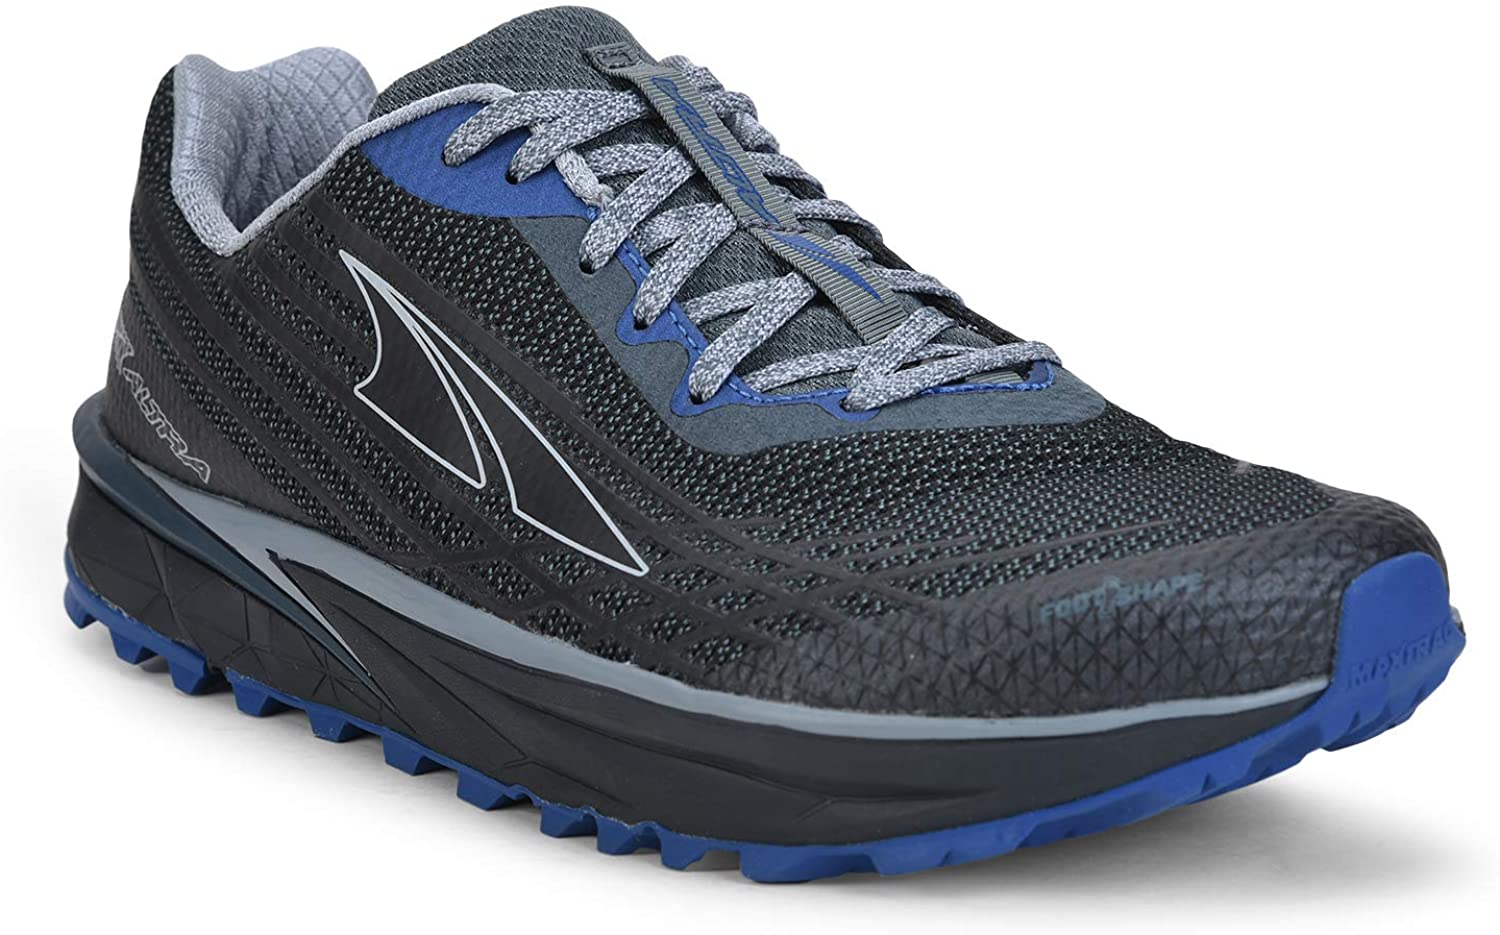 Altra Men's TIMP 2 Trail Running Shoe in Gray/Blue from the side